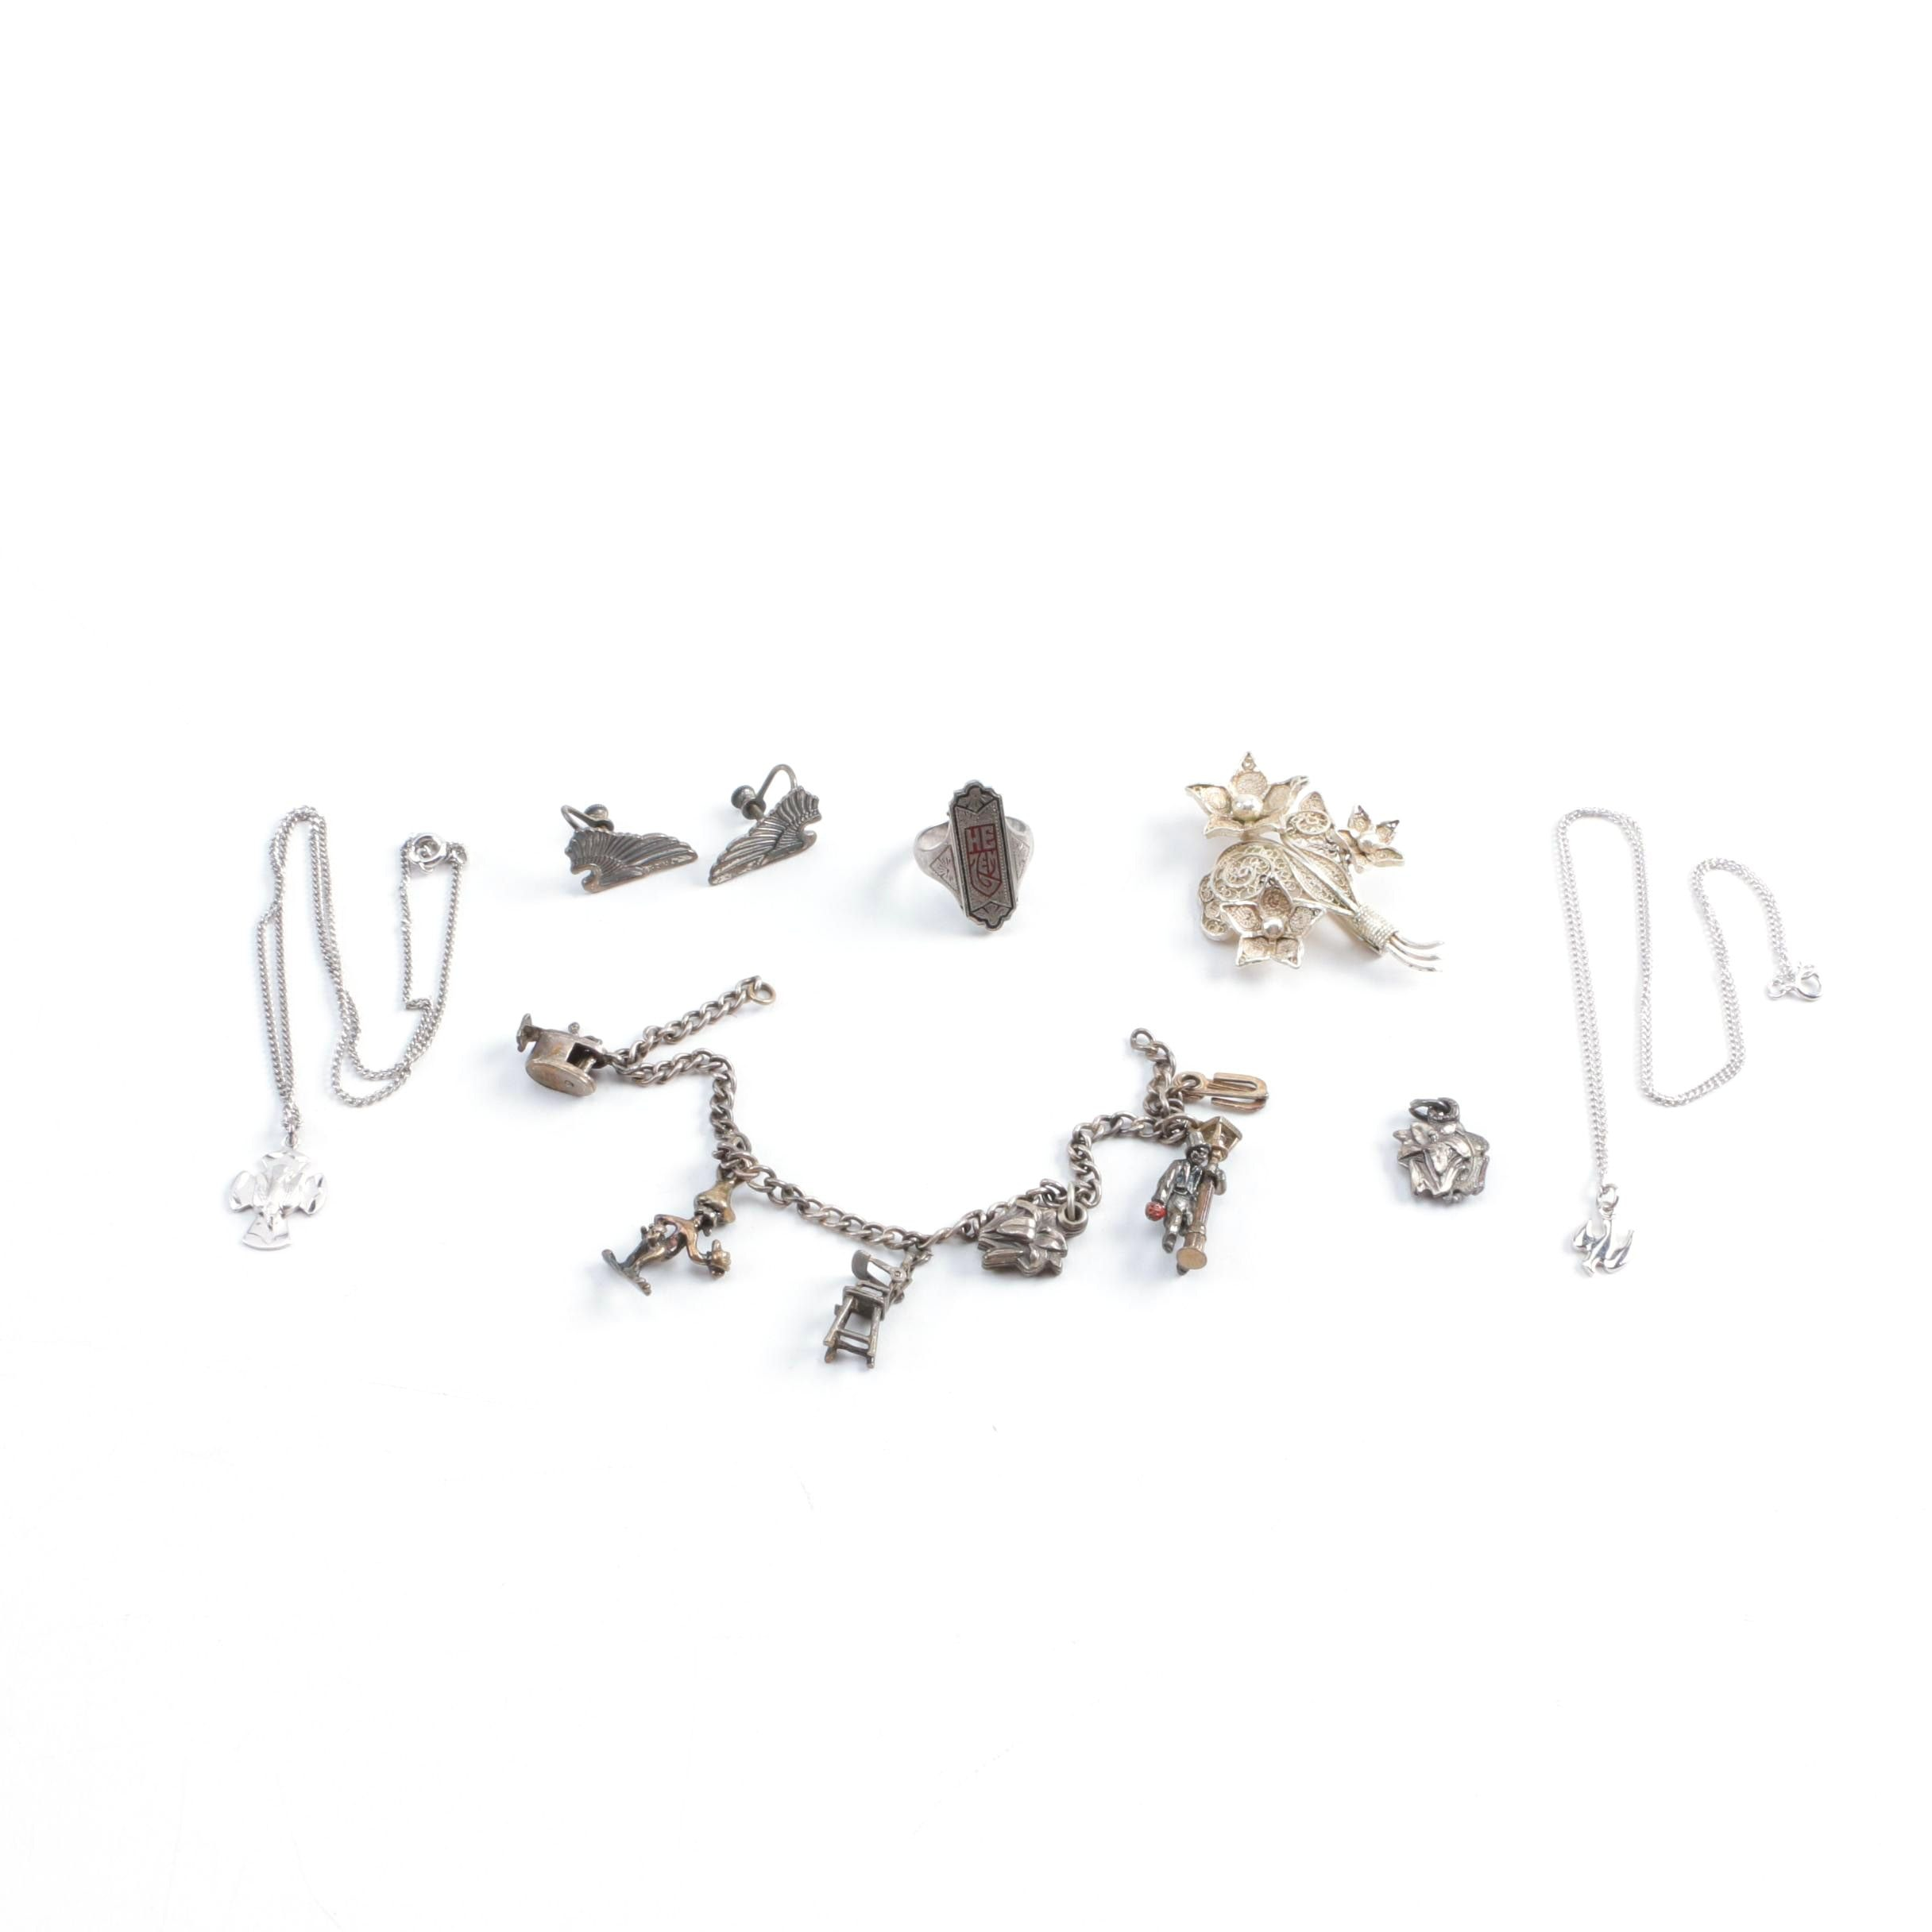 Religious Themed Sterling Silver Jewelry